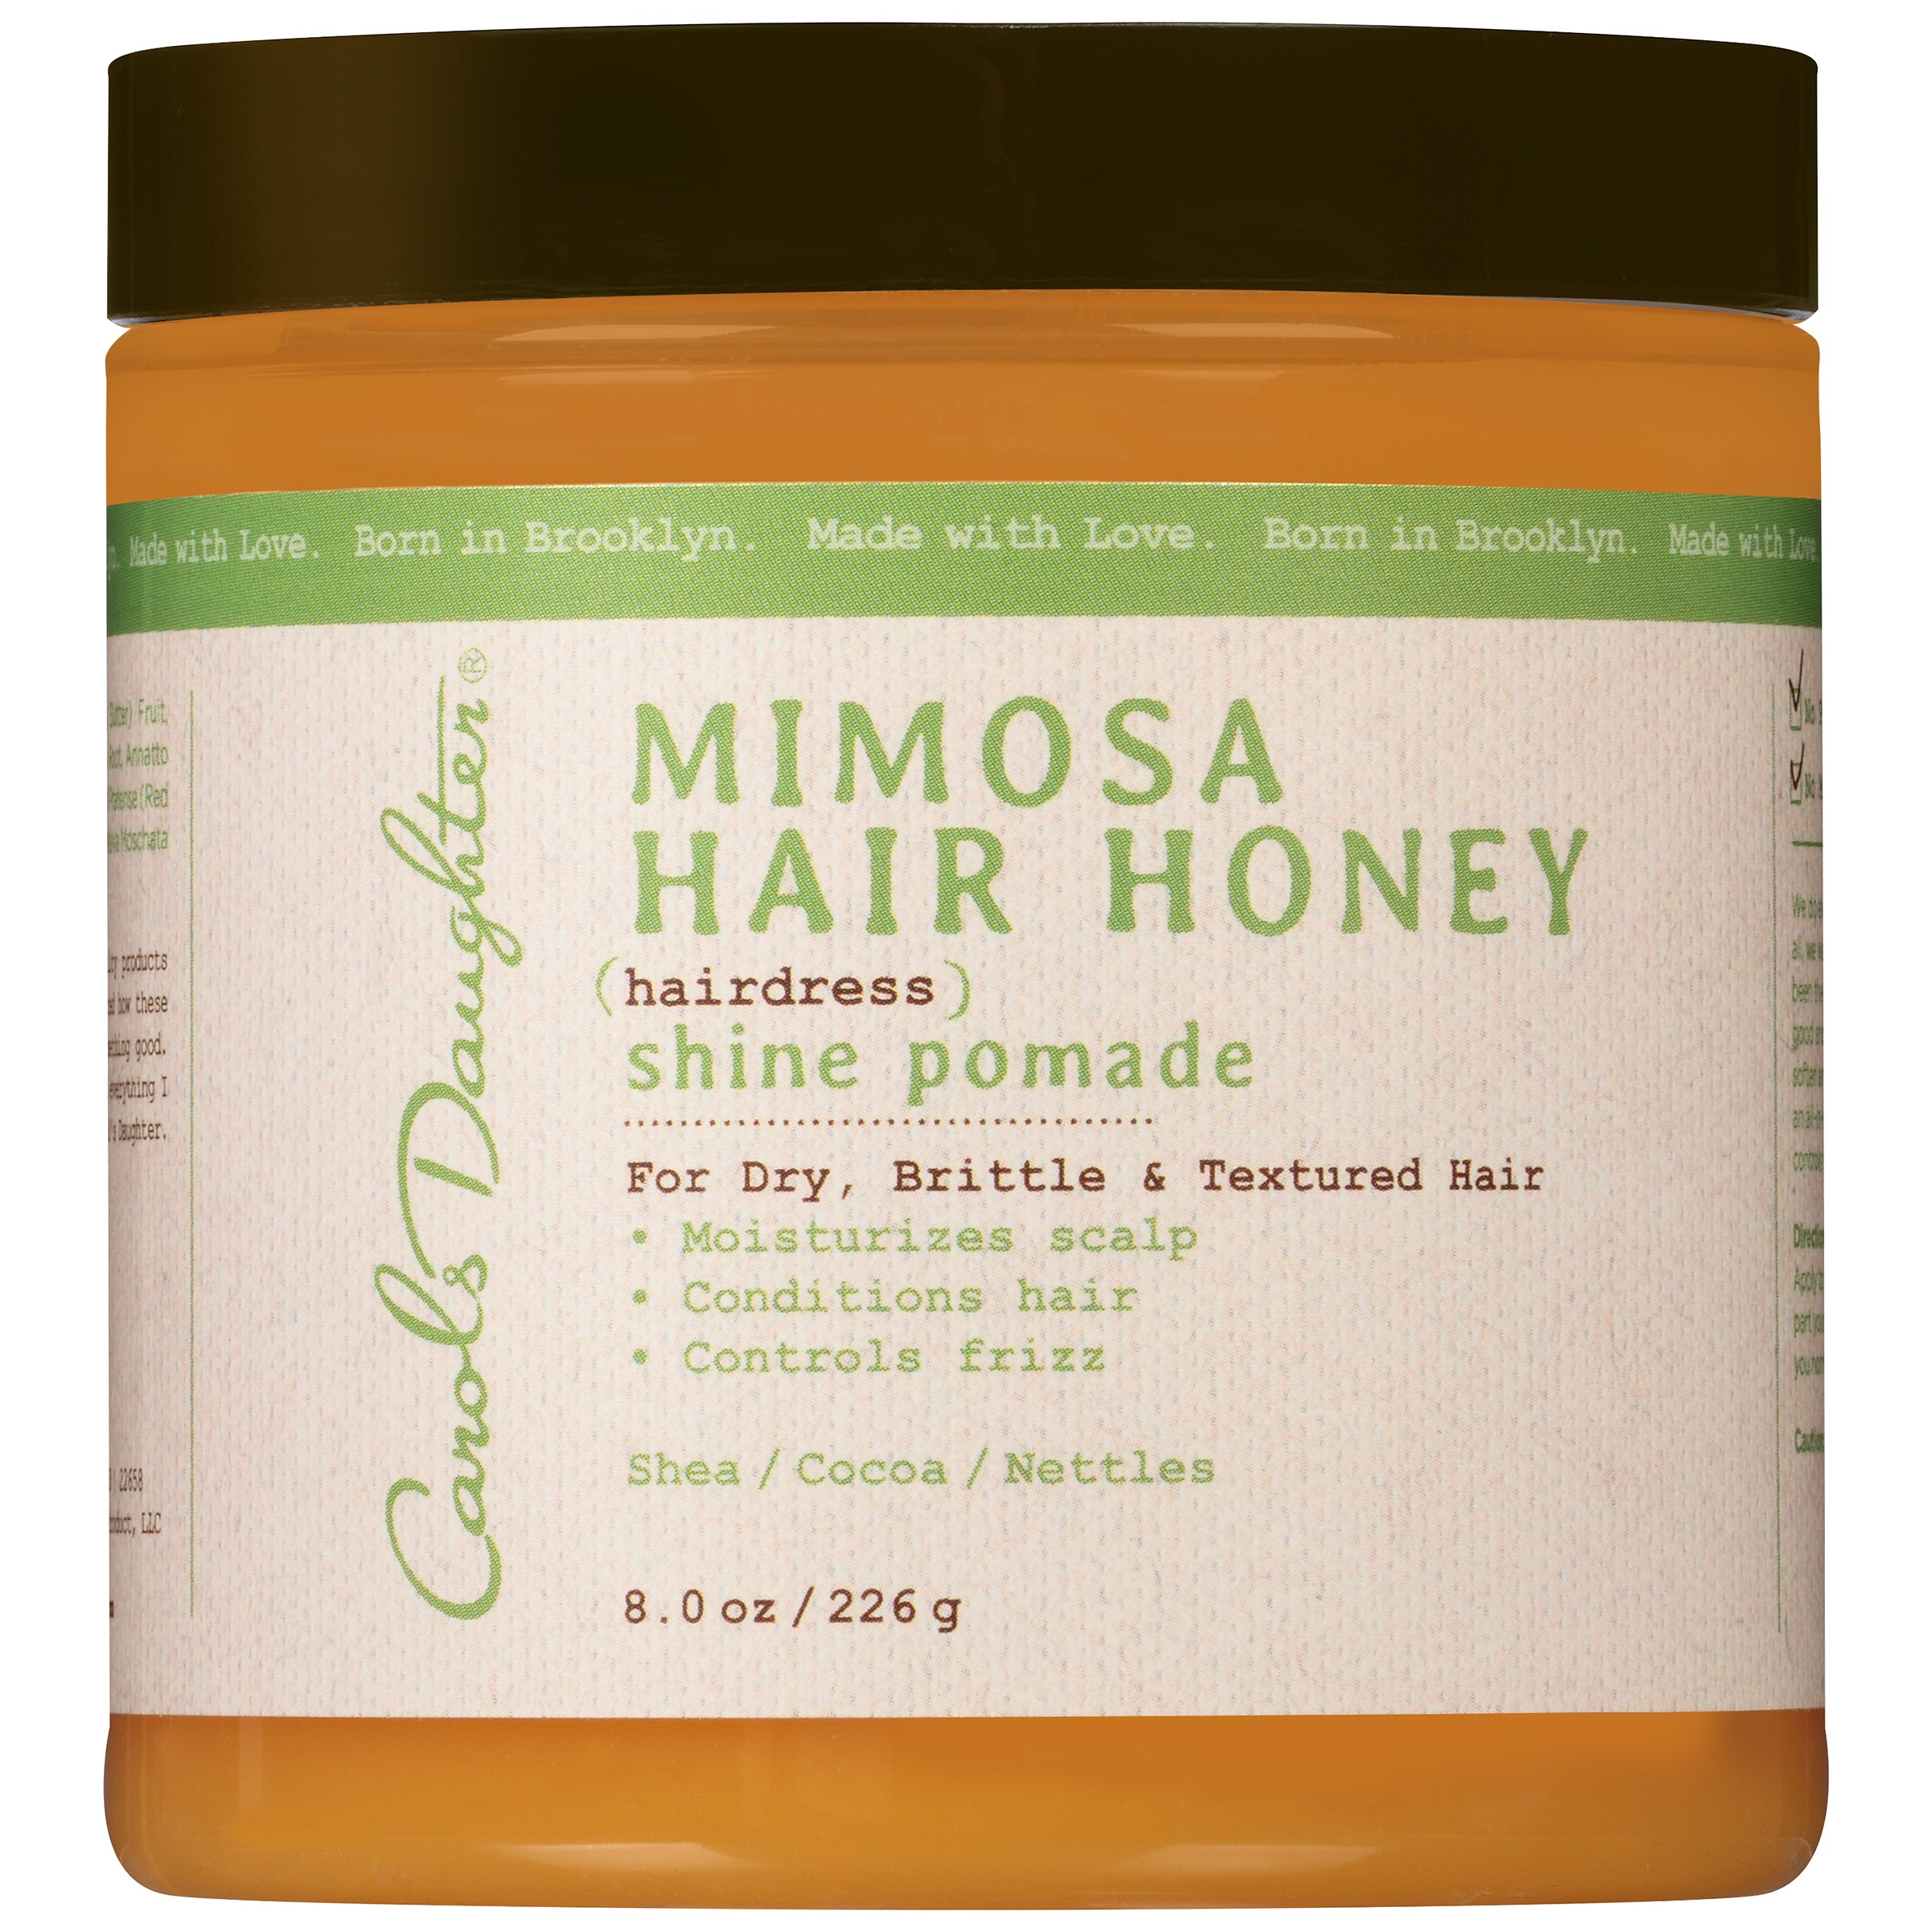 Carol's Daughter Moisturizing Mimosa Hair Honey Shine Pomade For Dry and Textured Hair, 8 fl oz